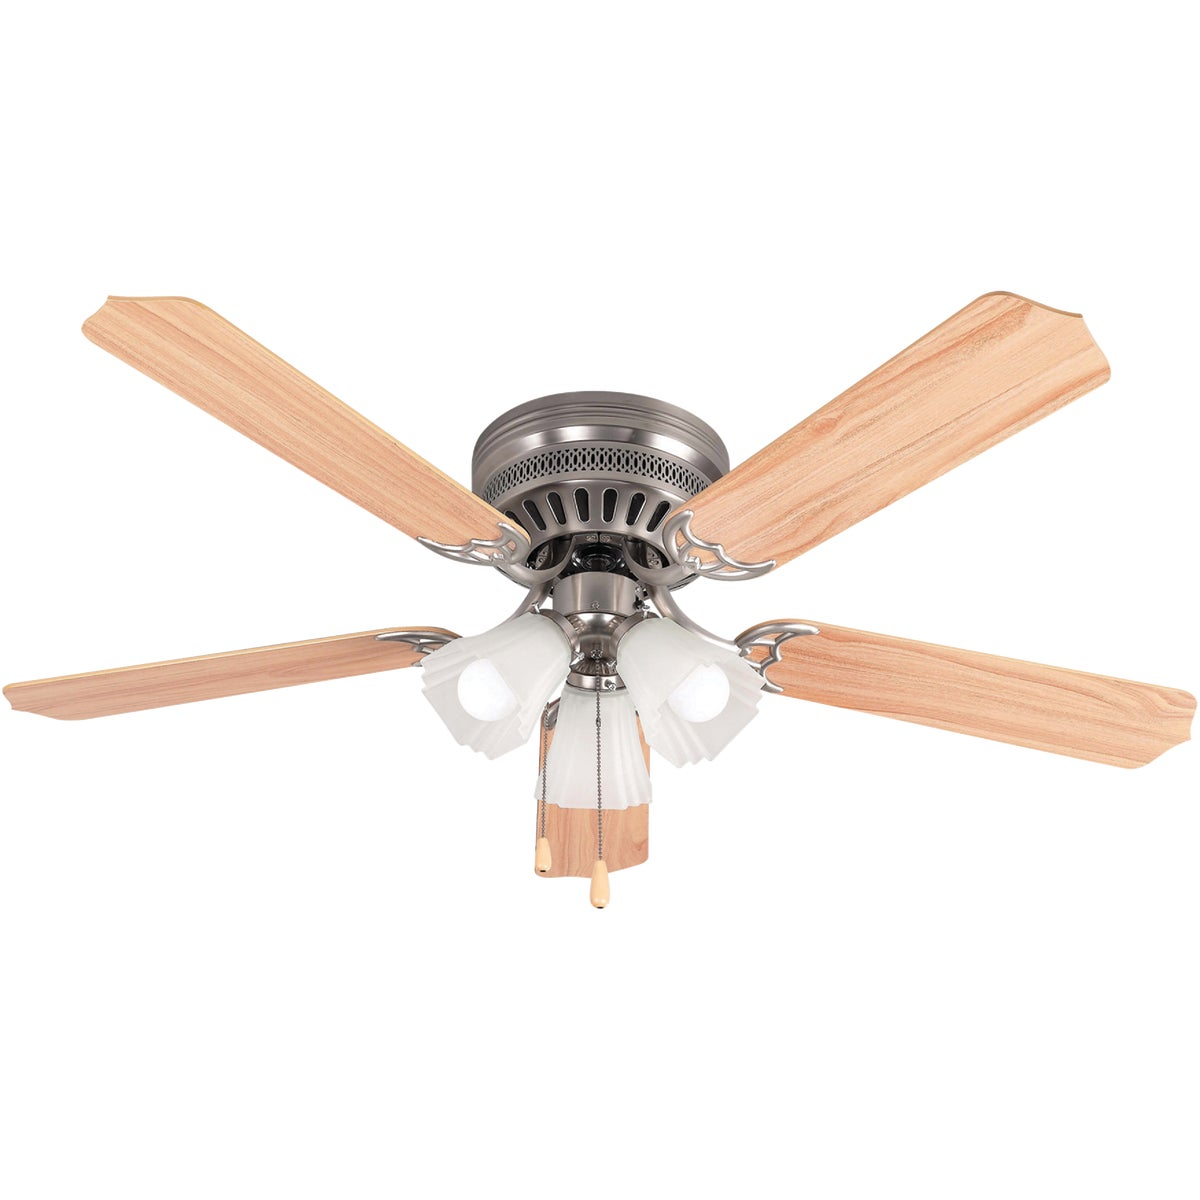 "52"" PEIDMONT BN CEIL FAN - CF52PIE5BN by Canarm Gs"